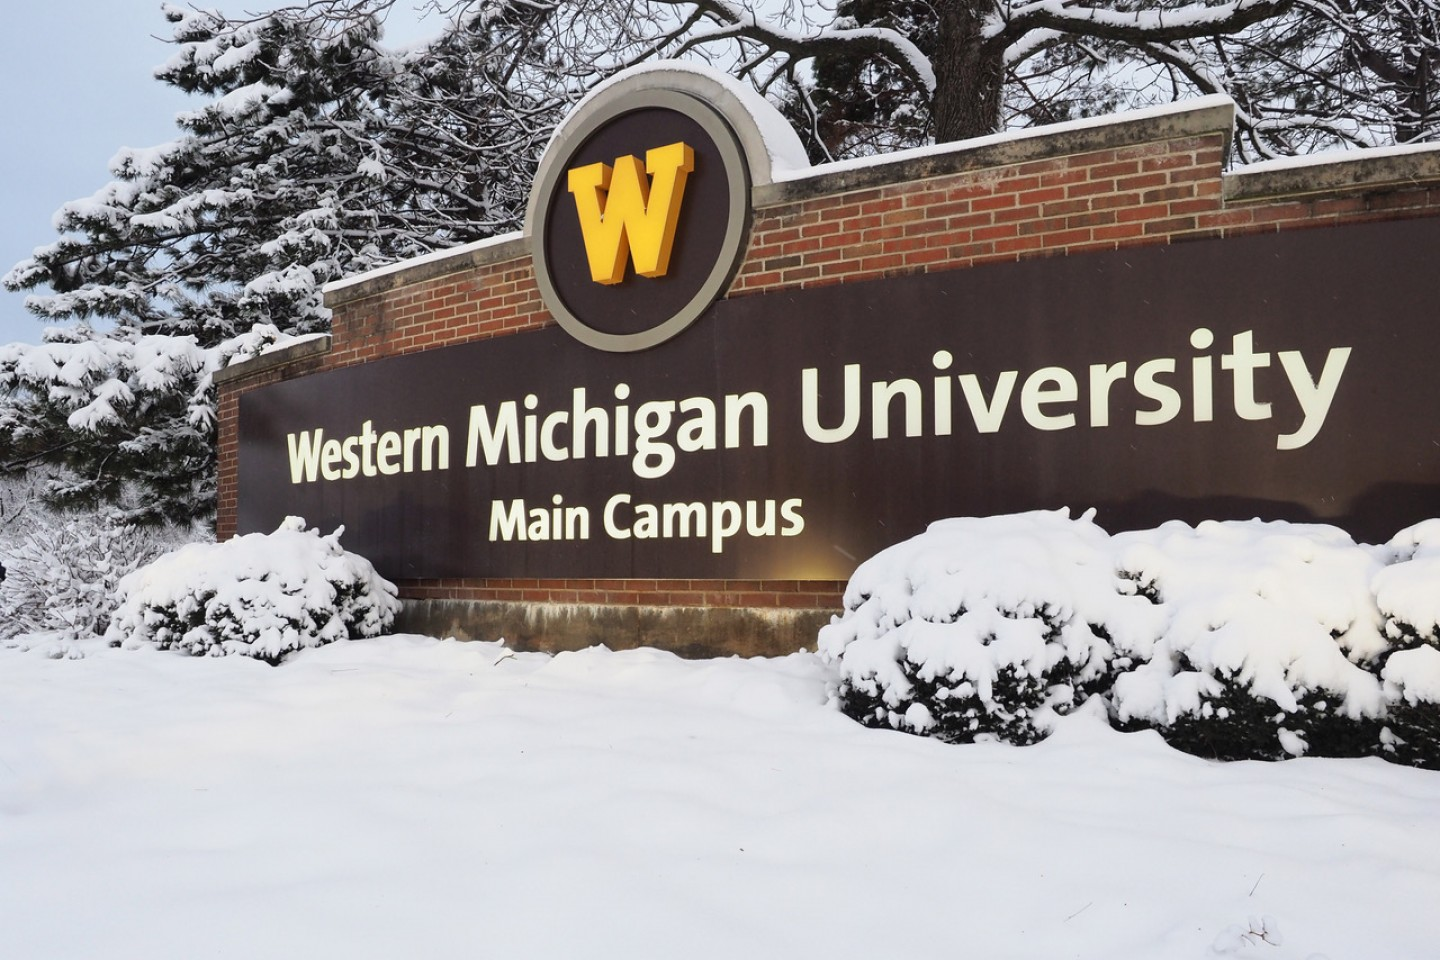 WMU campus sign surrounded by a snowy landscape